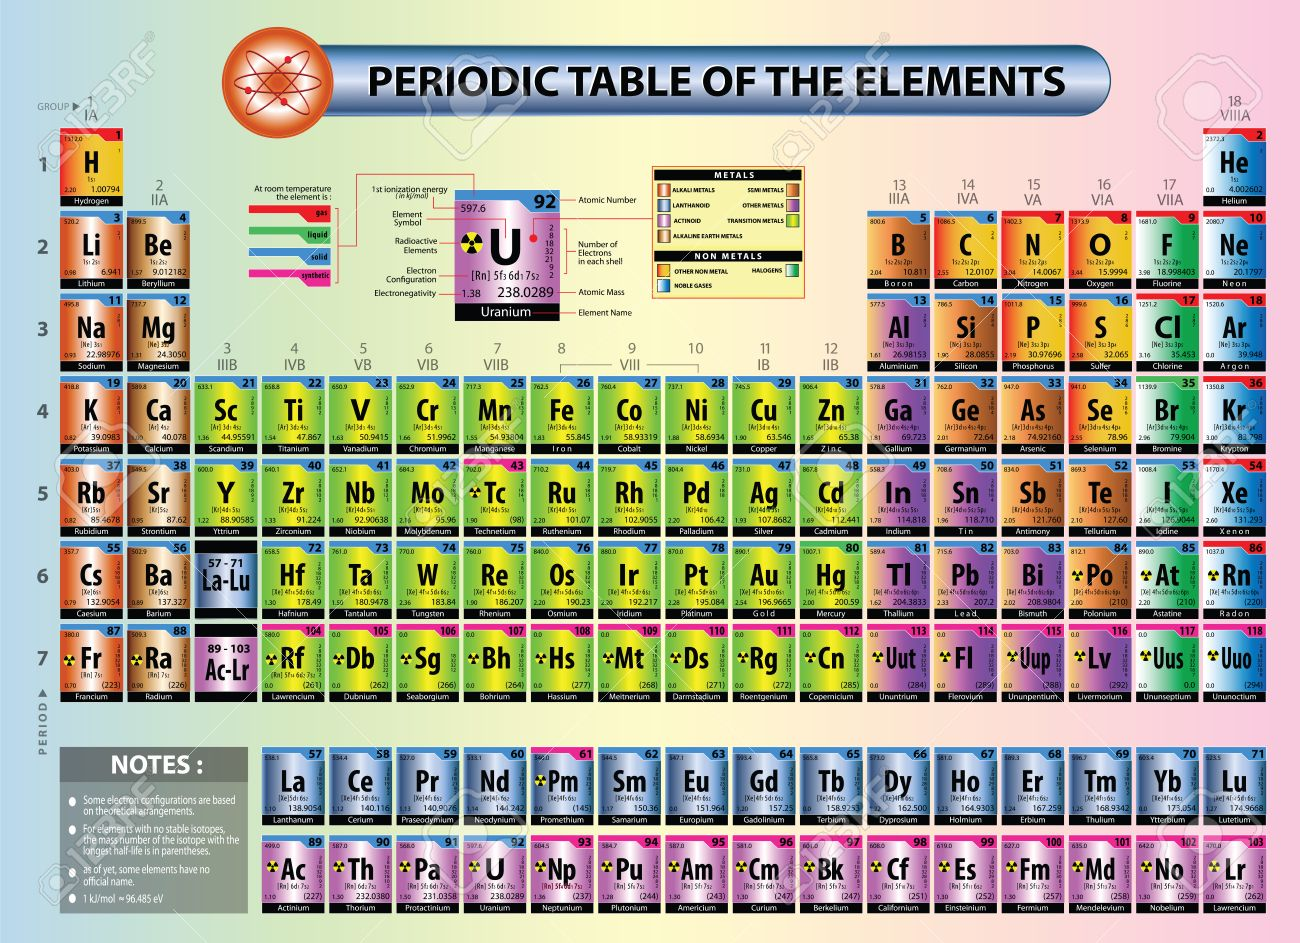 39 periodic table images periodic table images periodic table of elements with element name element symbols periodic table of elements with element name gamestrikefo Image collections